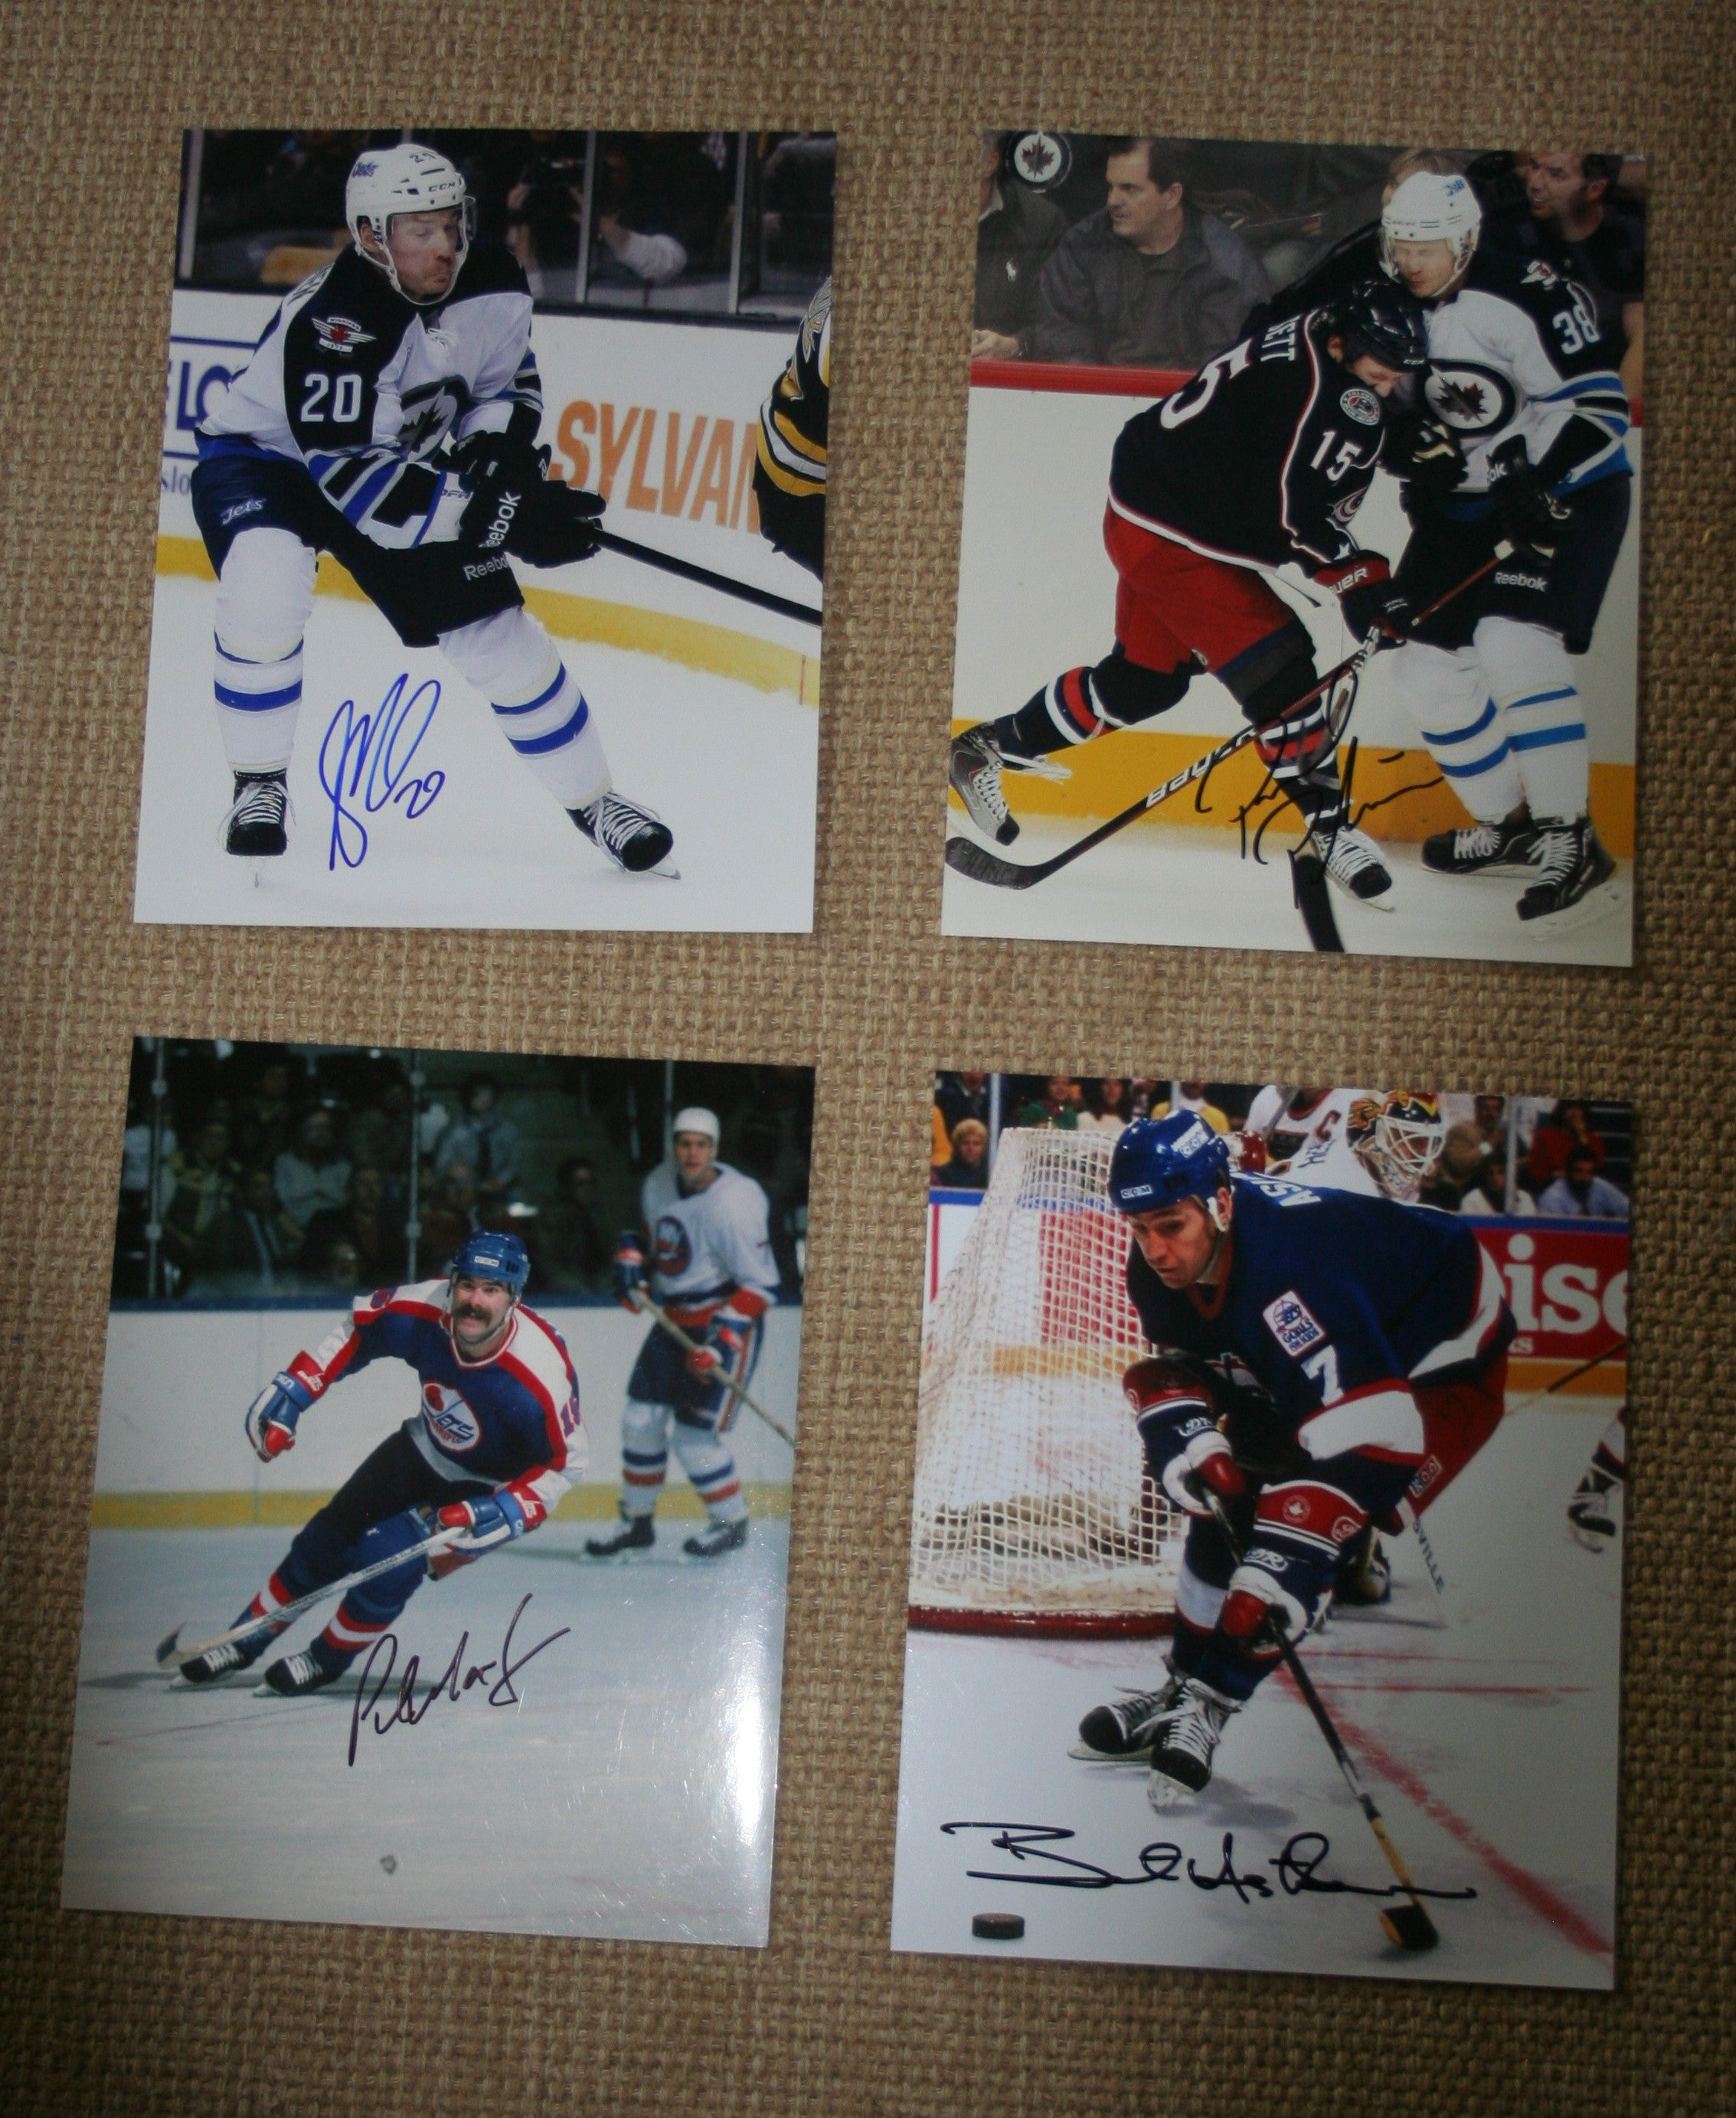 Lot of 4 Autographed Winnipeg Jets 8x10 Photos Miettinen Postma MacLean Ashton